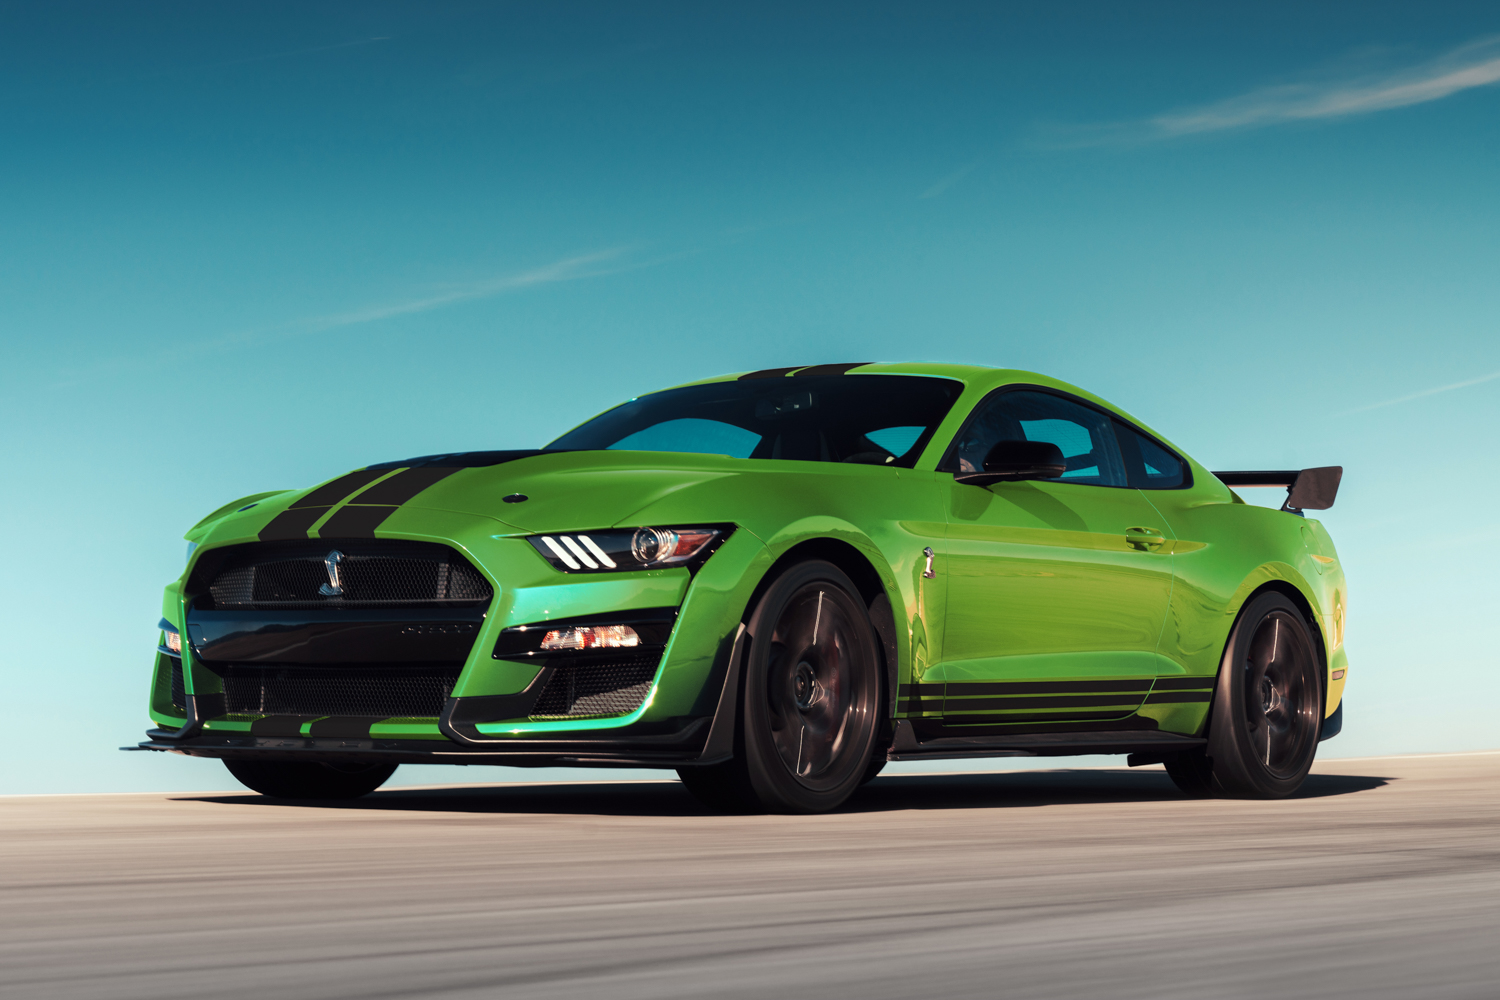 2020 Mustang GT500 in Grabber Lime rear 3/4